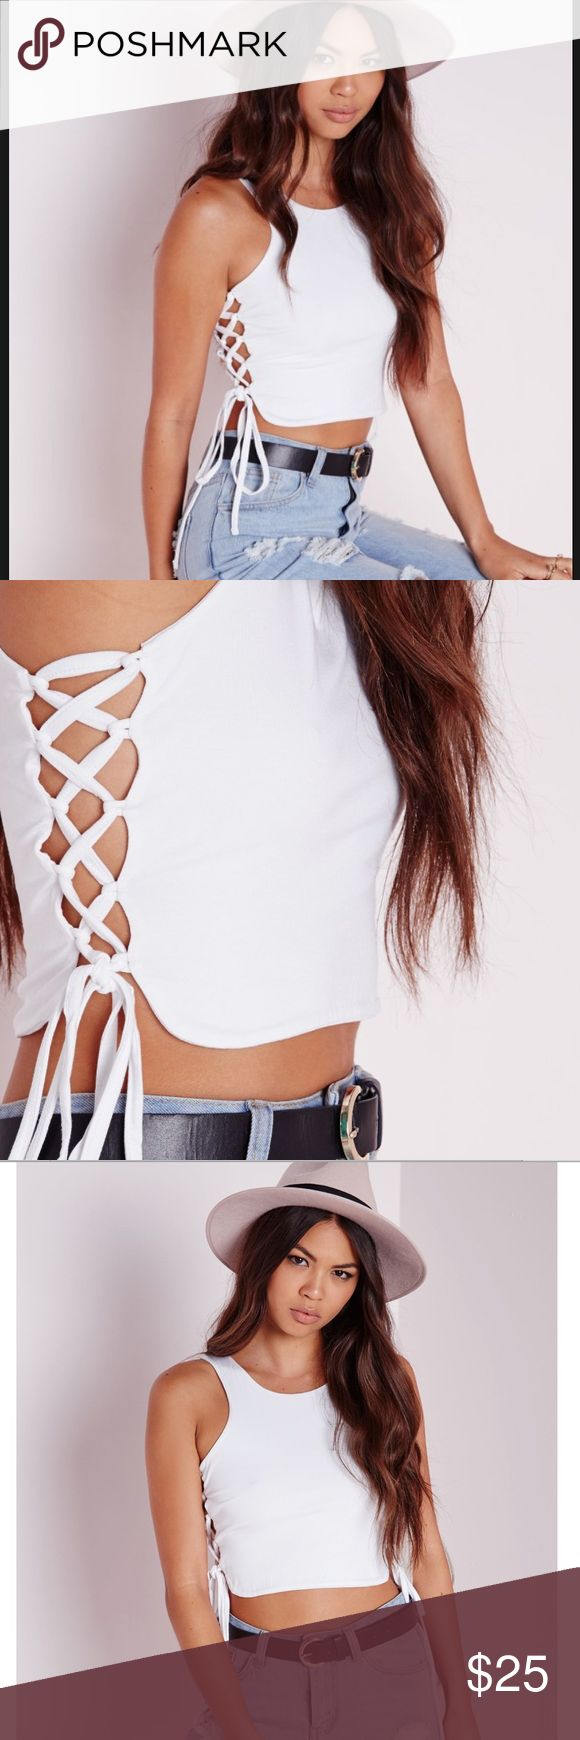 Missguided Lace Up Side Crop Top Slightly see through white fabric depending on what you wear underneath. It's still thick fabric though. And I just love the Lace up detailing on the side! Looks cute with a pair of ripped jeans 😍 I'm not sure why it says size 1 on the tag, online it said size 0 and the options were size 0 or 2! Missguided Tops